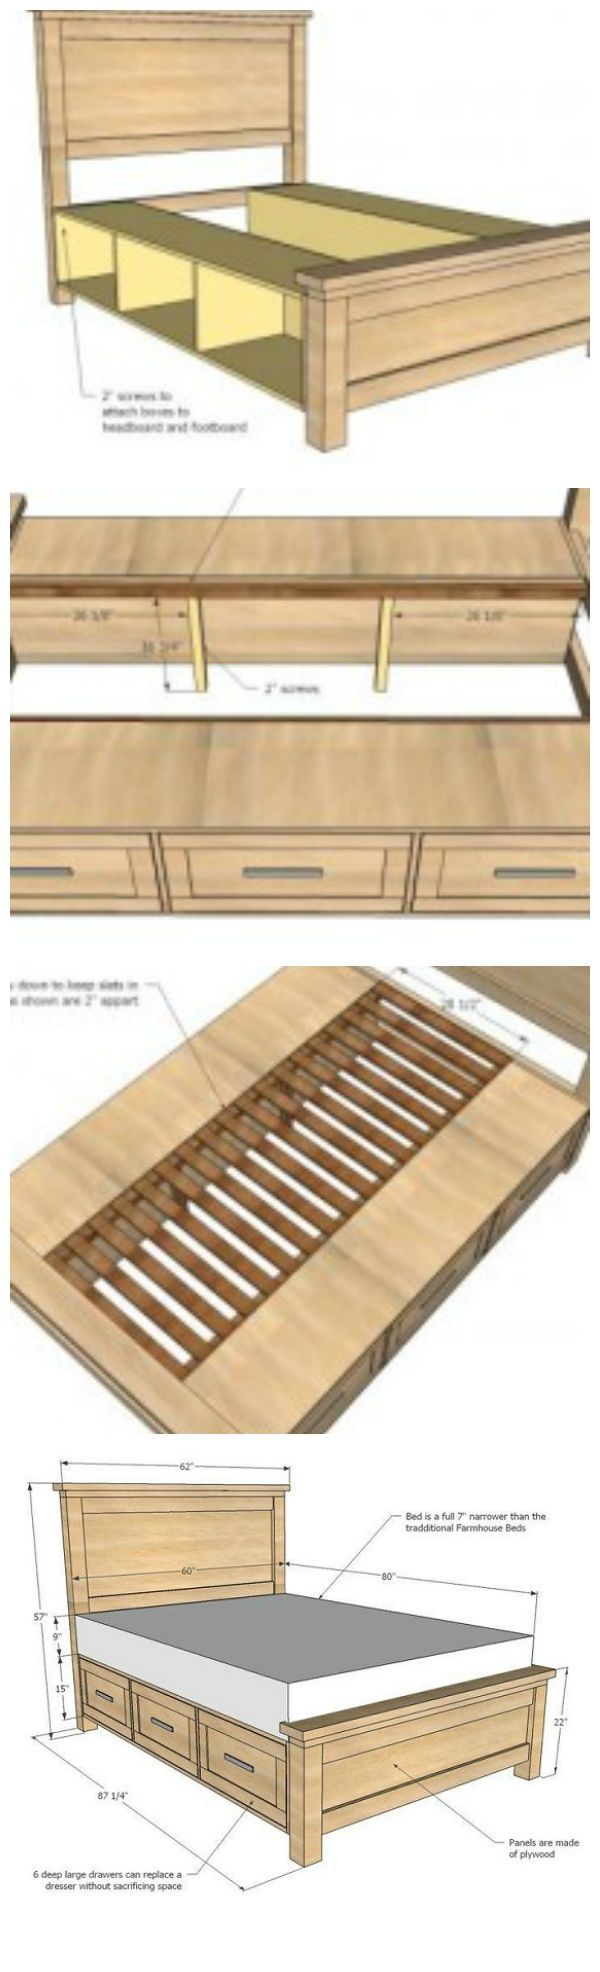 Bed Frames With Storage Plans full size bed frame with storage plans | woodworking | pinterest